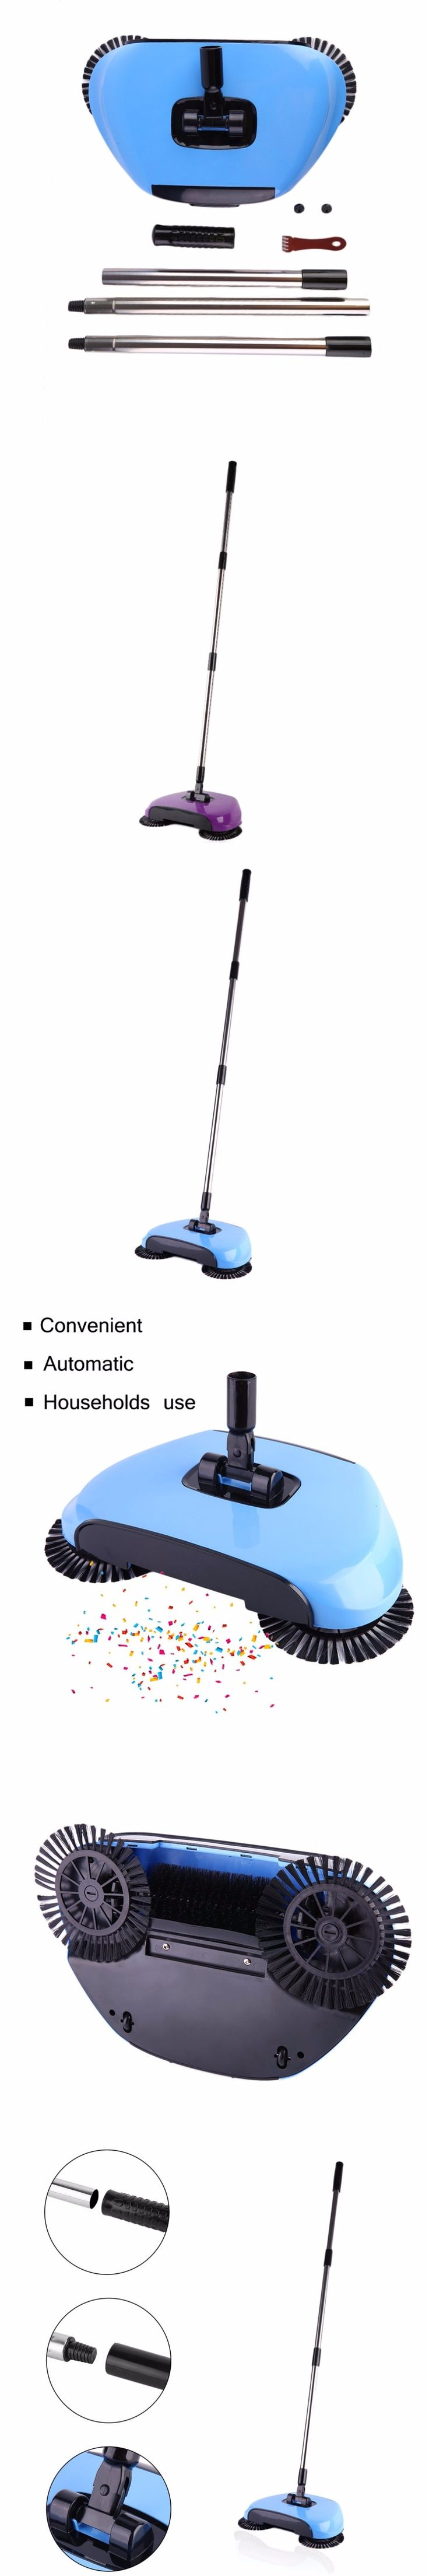 2 Color Hand Push Type Sweeping Machine Household Plastic Broom And Dustpan Set Vacuum Floor Cleaner Gift Hand-Propelled Sweeper